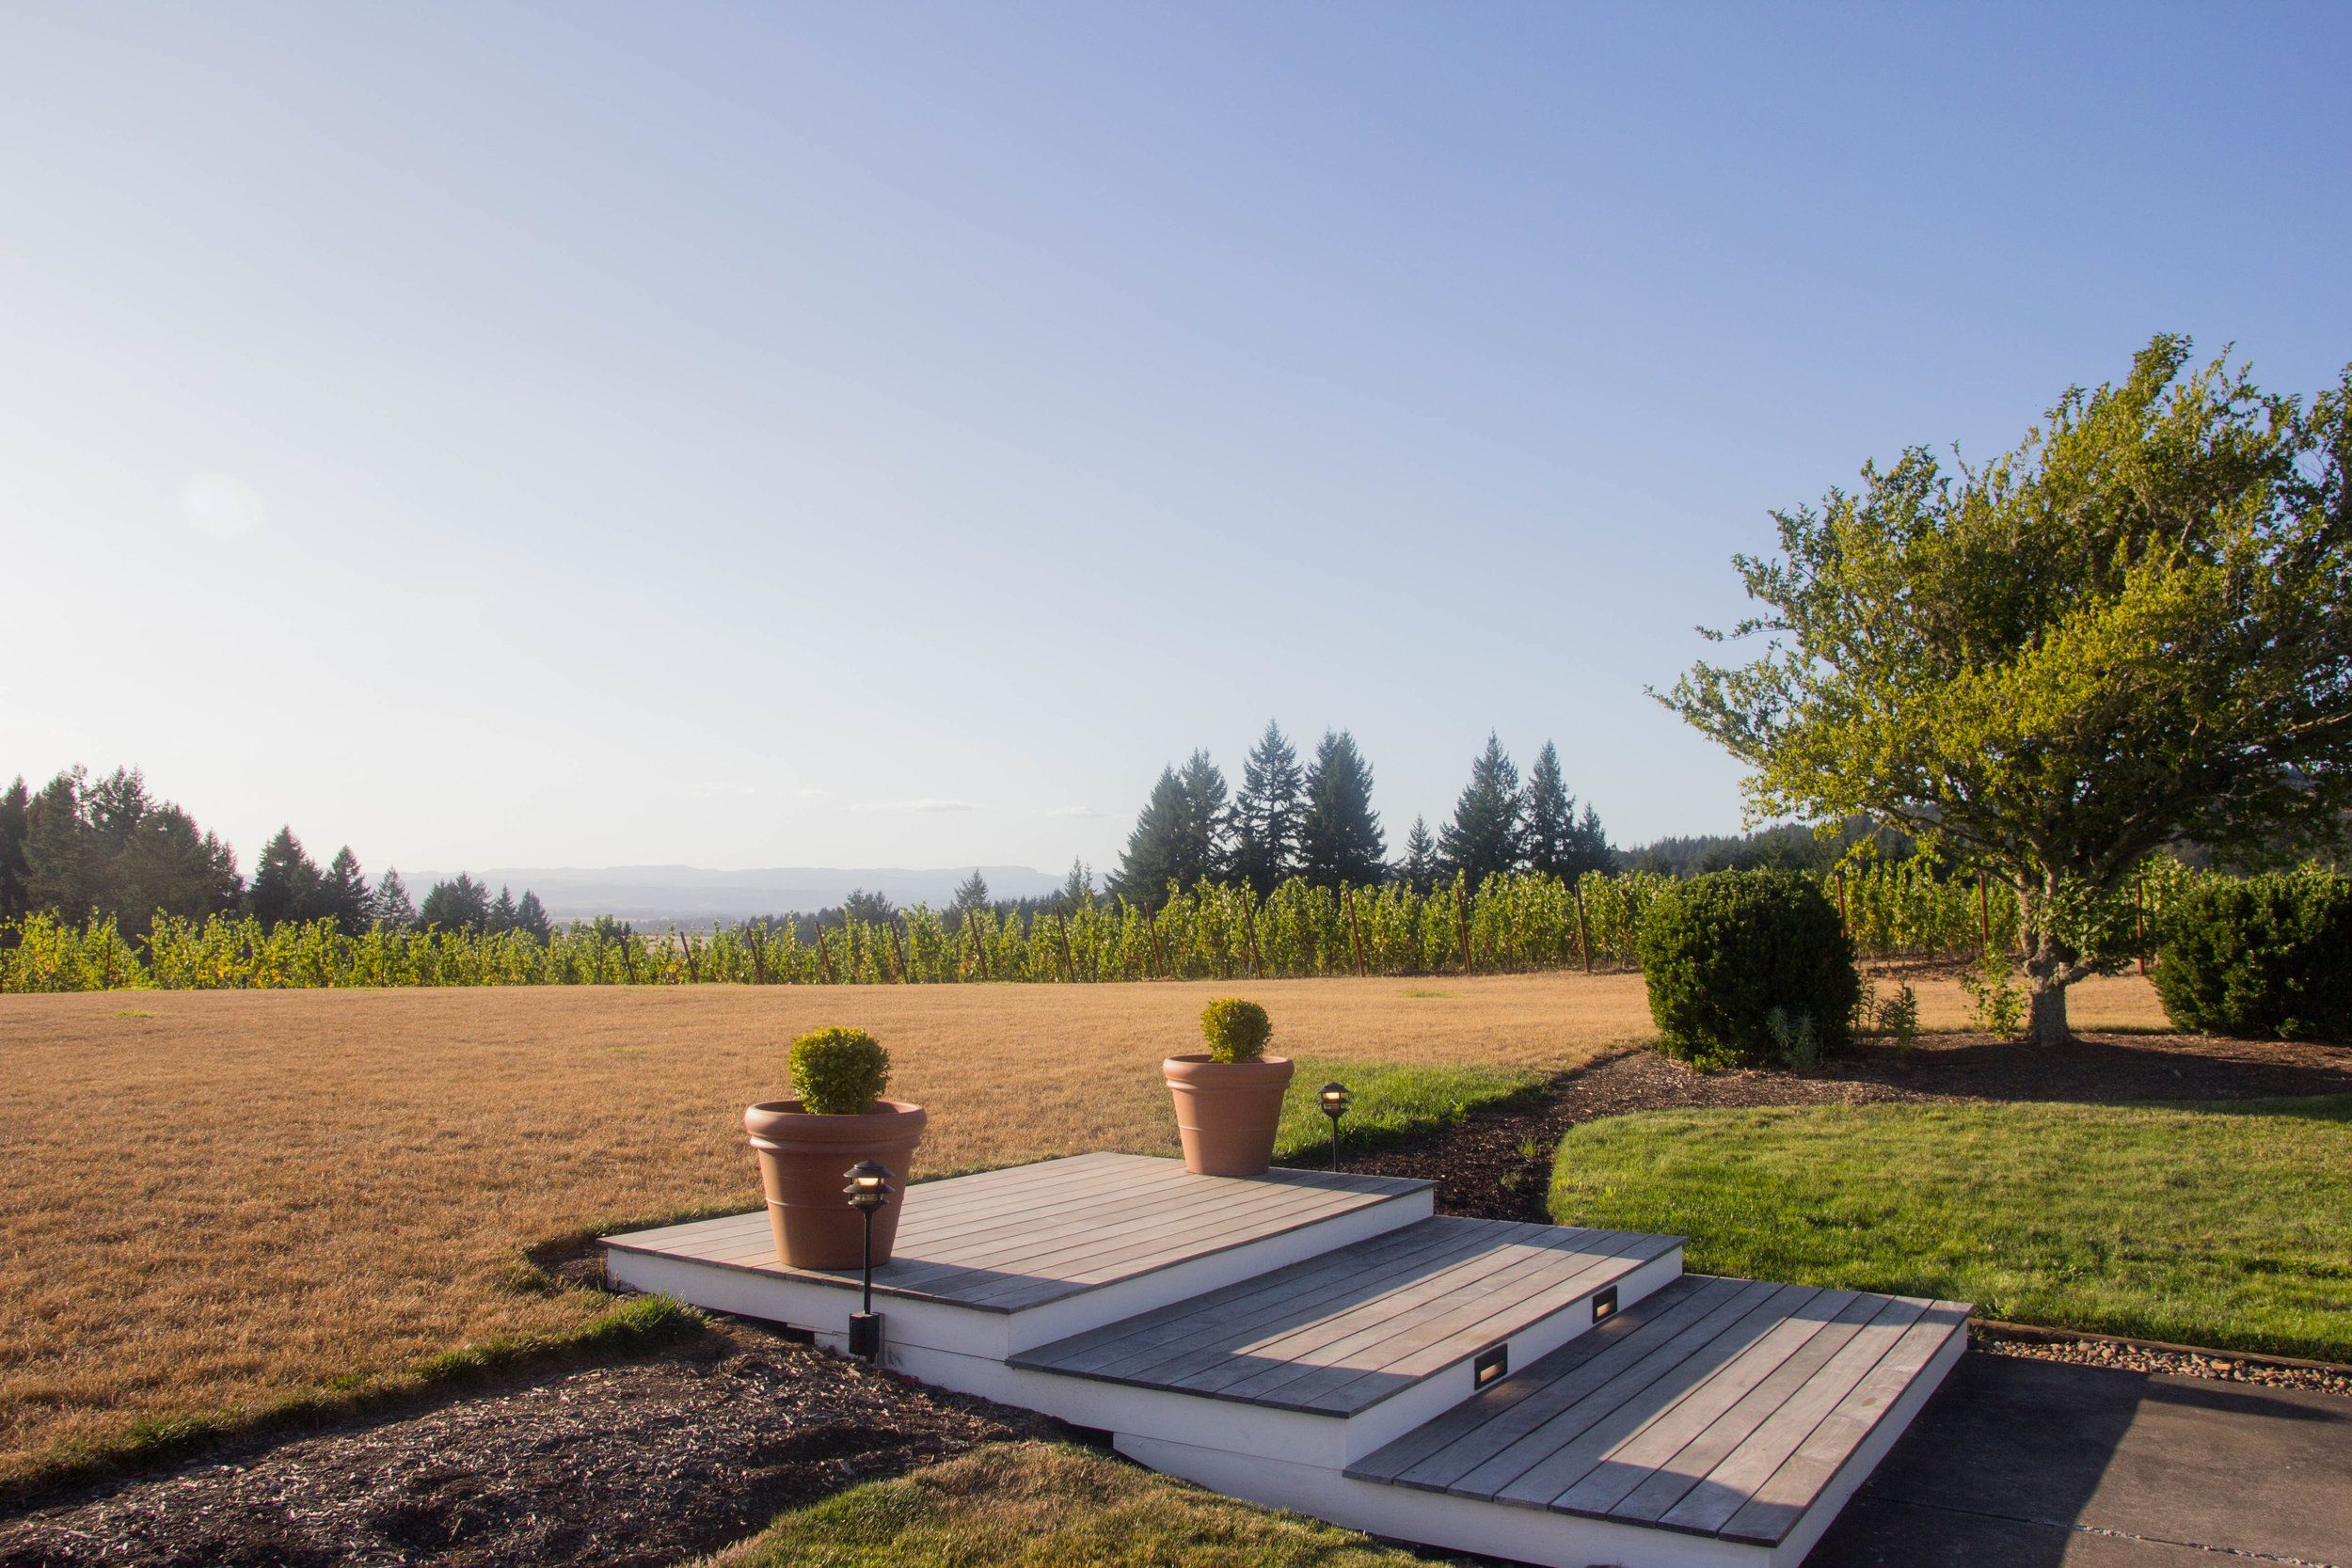 Travel guide what to do in the willamette valley, salem, oregon.